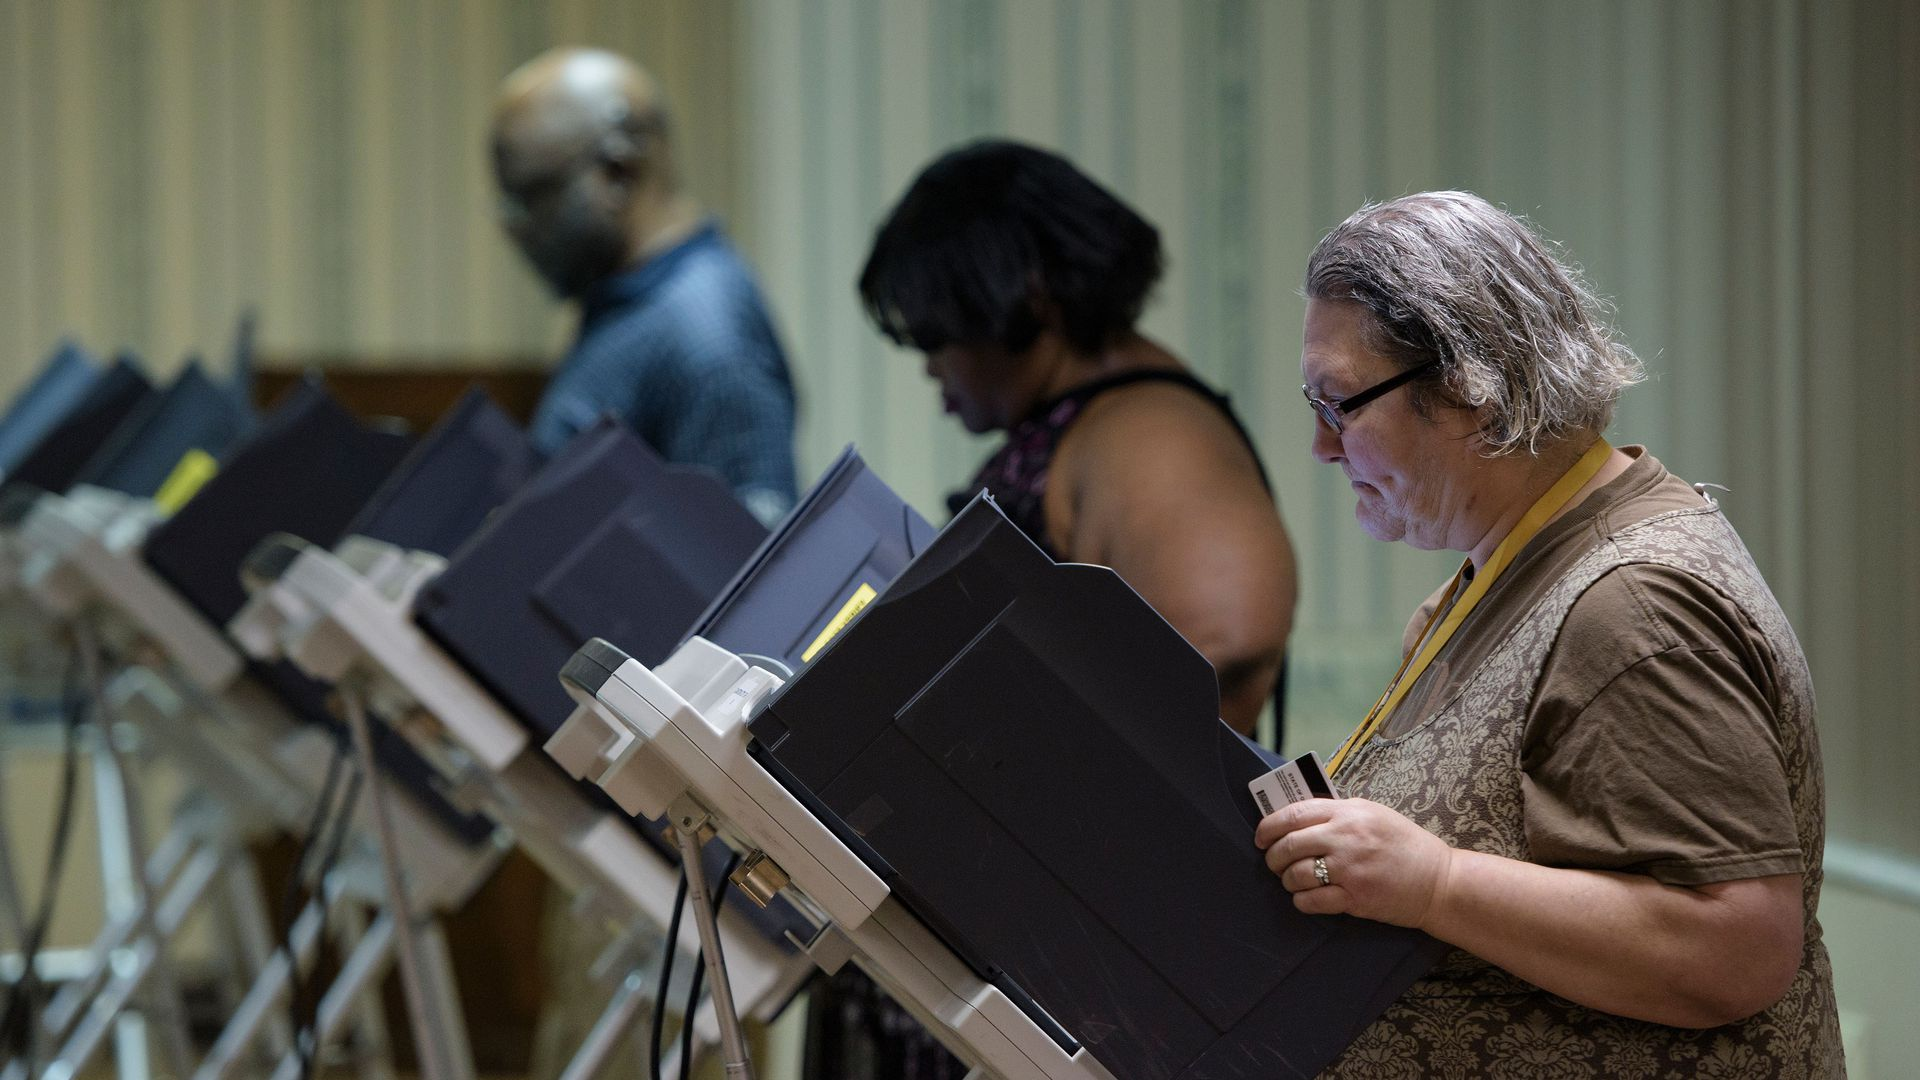 Three voters voting on electronic machines in a row.